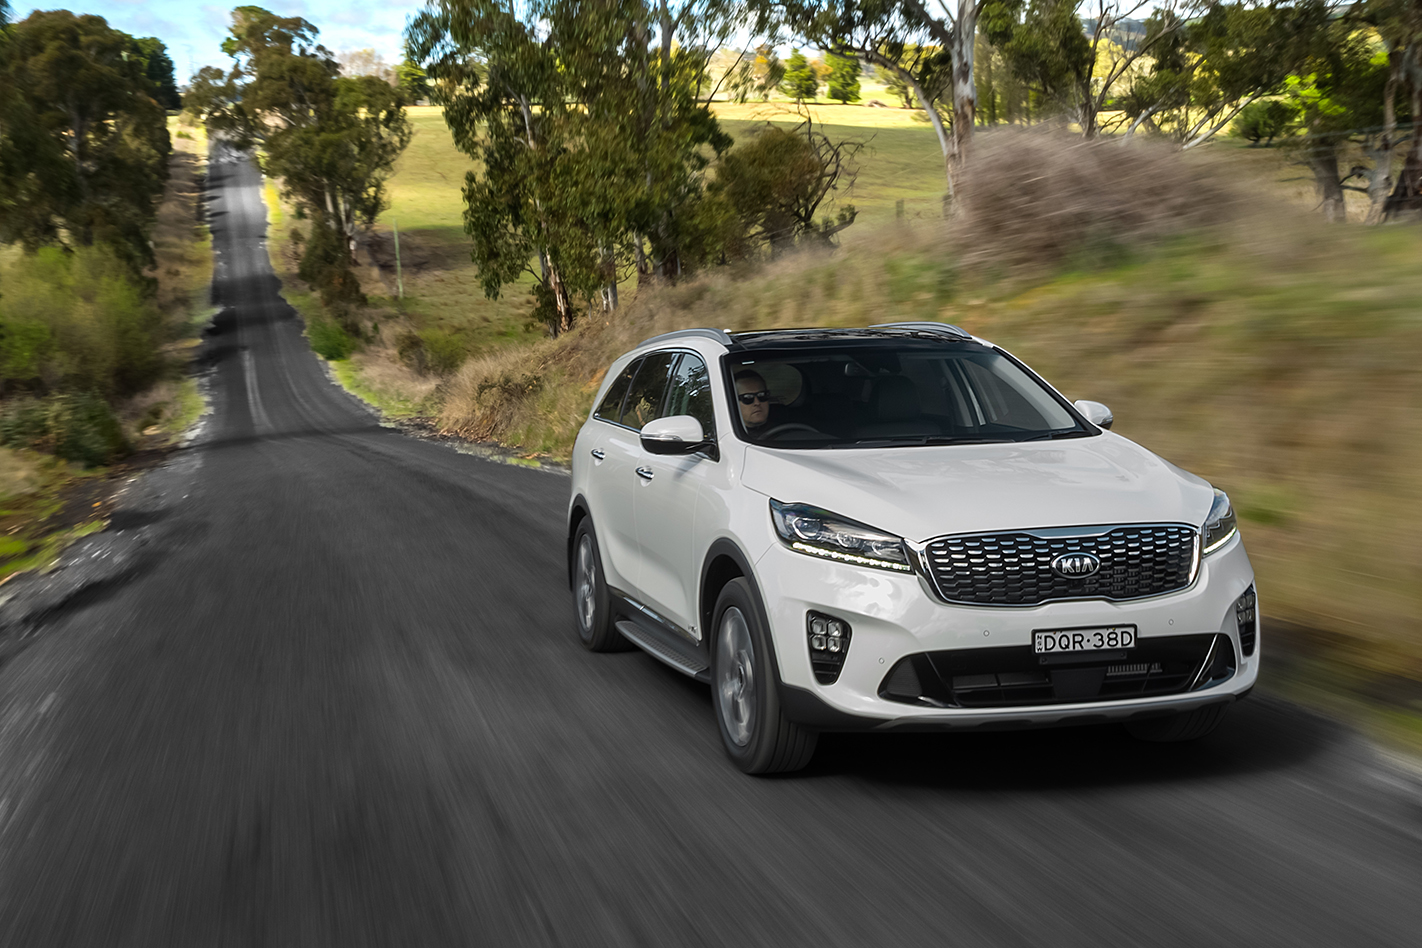 2018 Kia Sorento Pricing And Features